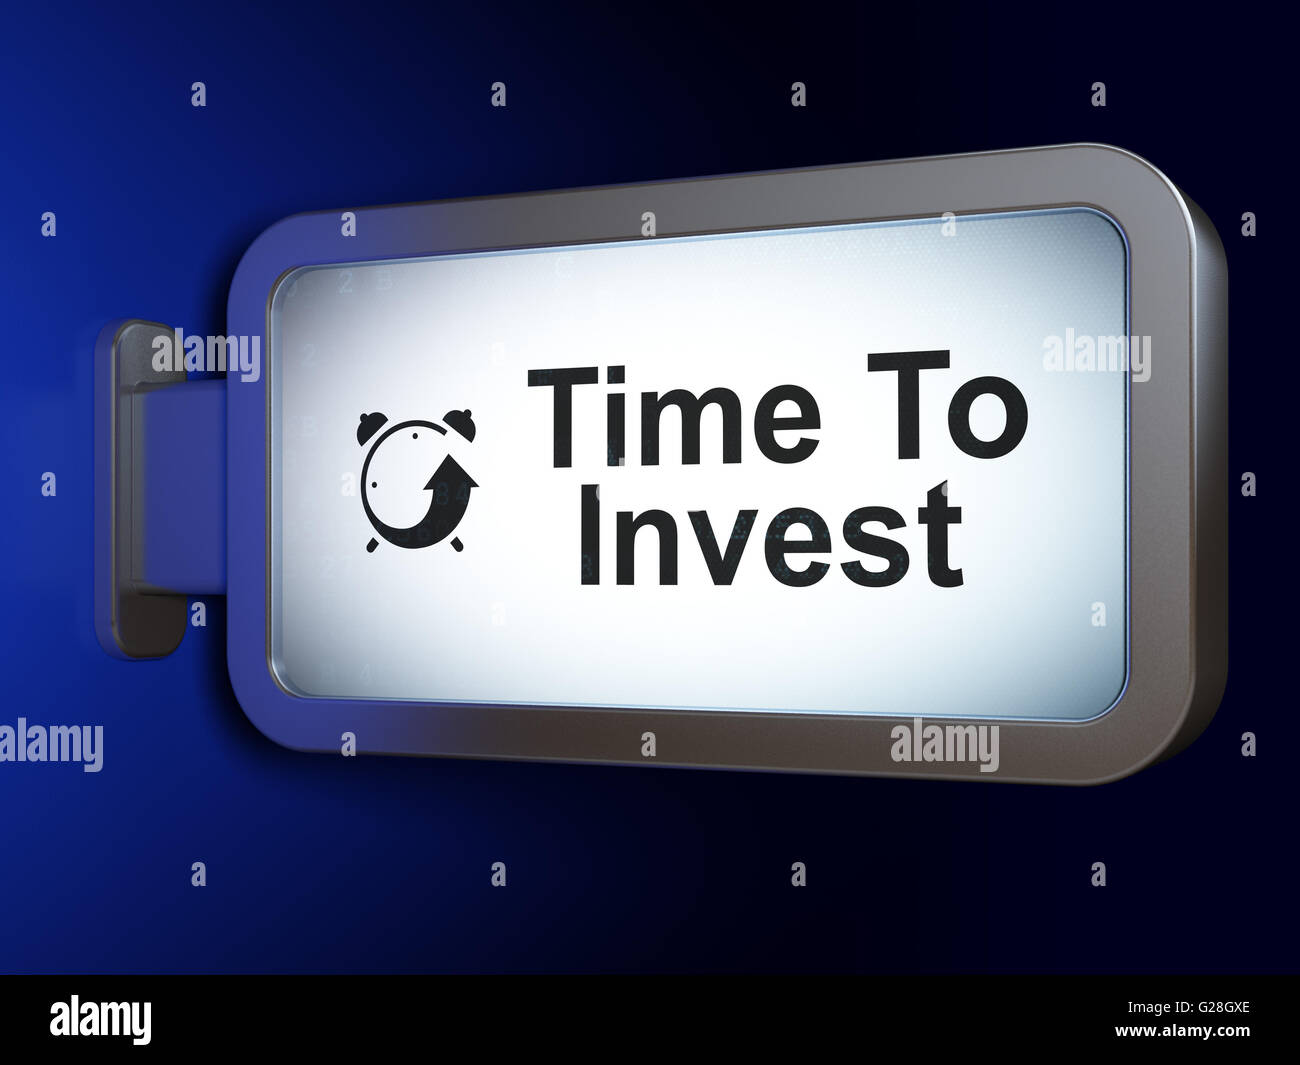 Timeline concept: Time To Invest and Alarm Clock on billboard background - Stock Image